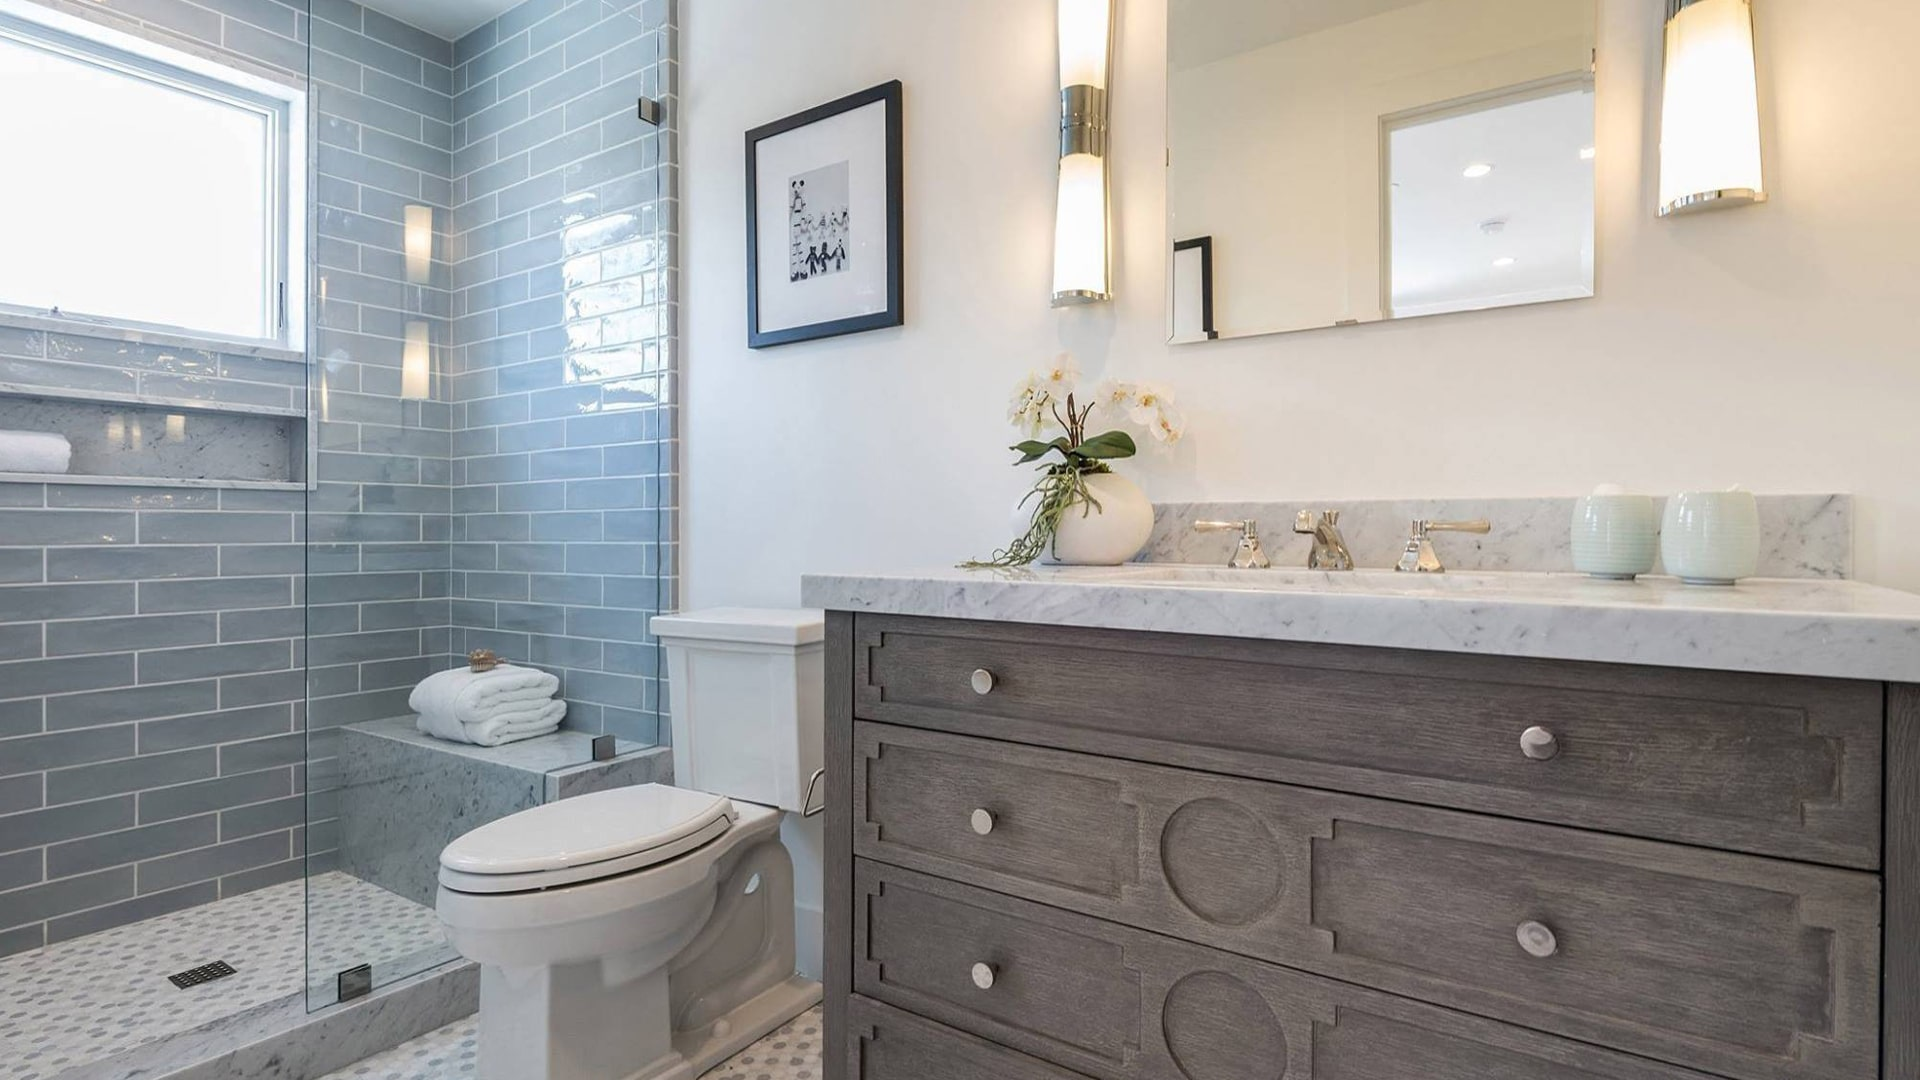 Space Saving Style For Small Bathroom, Bathroom Remodel Small